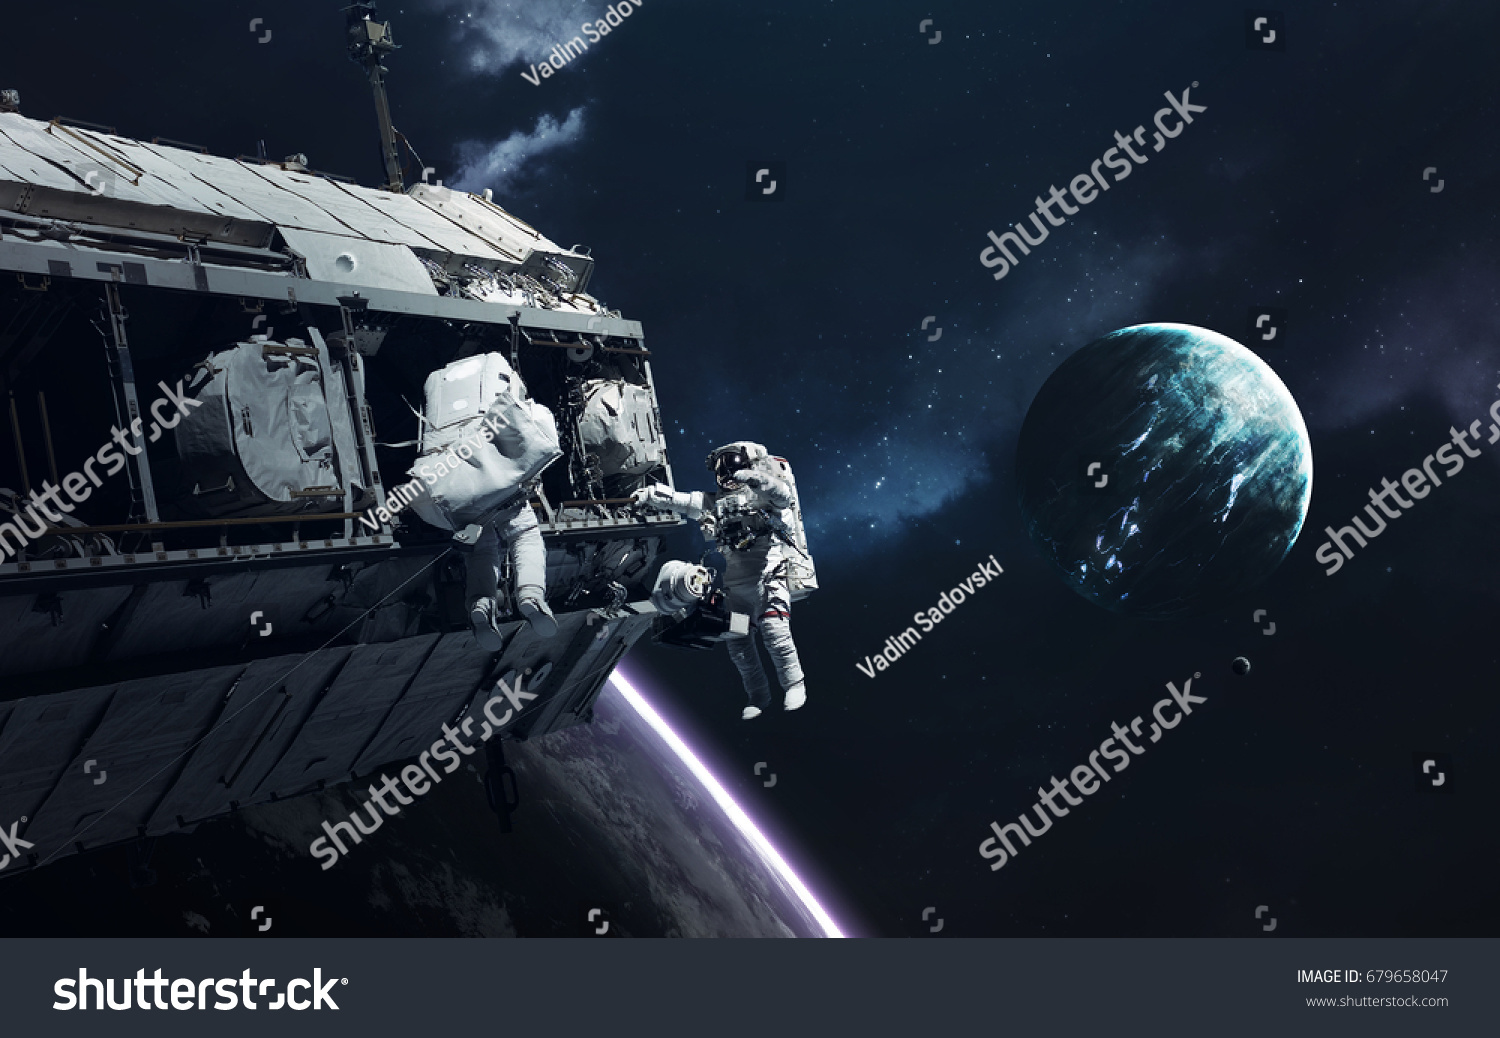 science fiction space wallpaper, incredibly beautiful planets